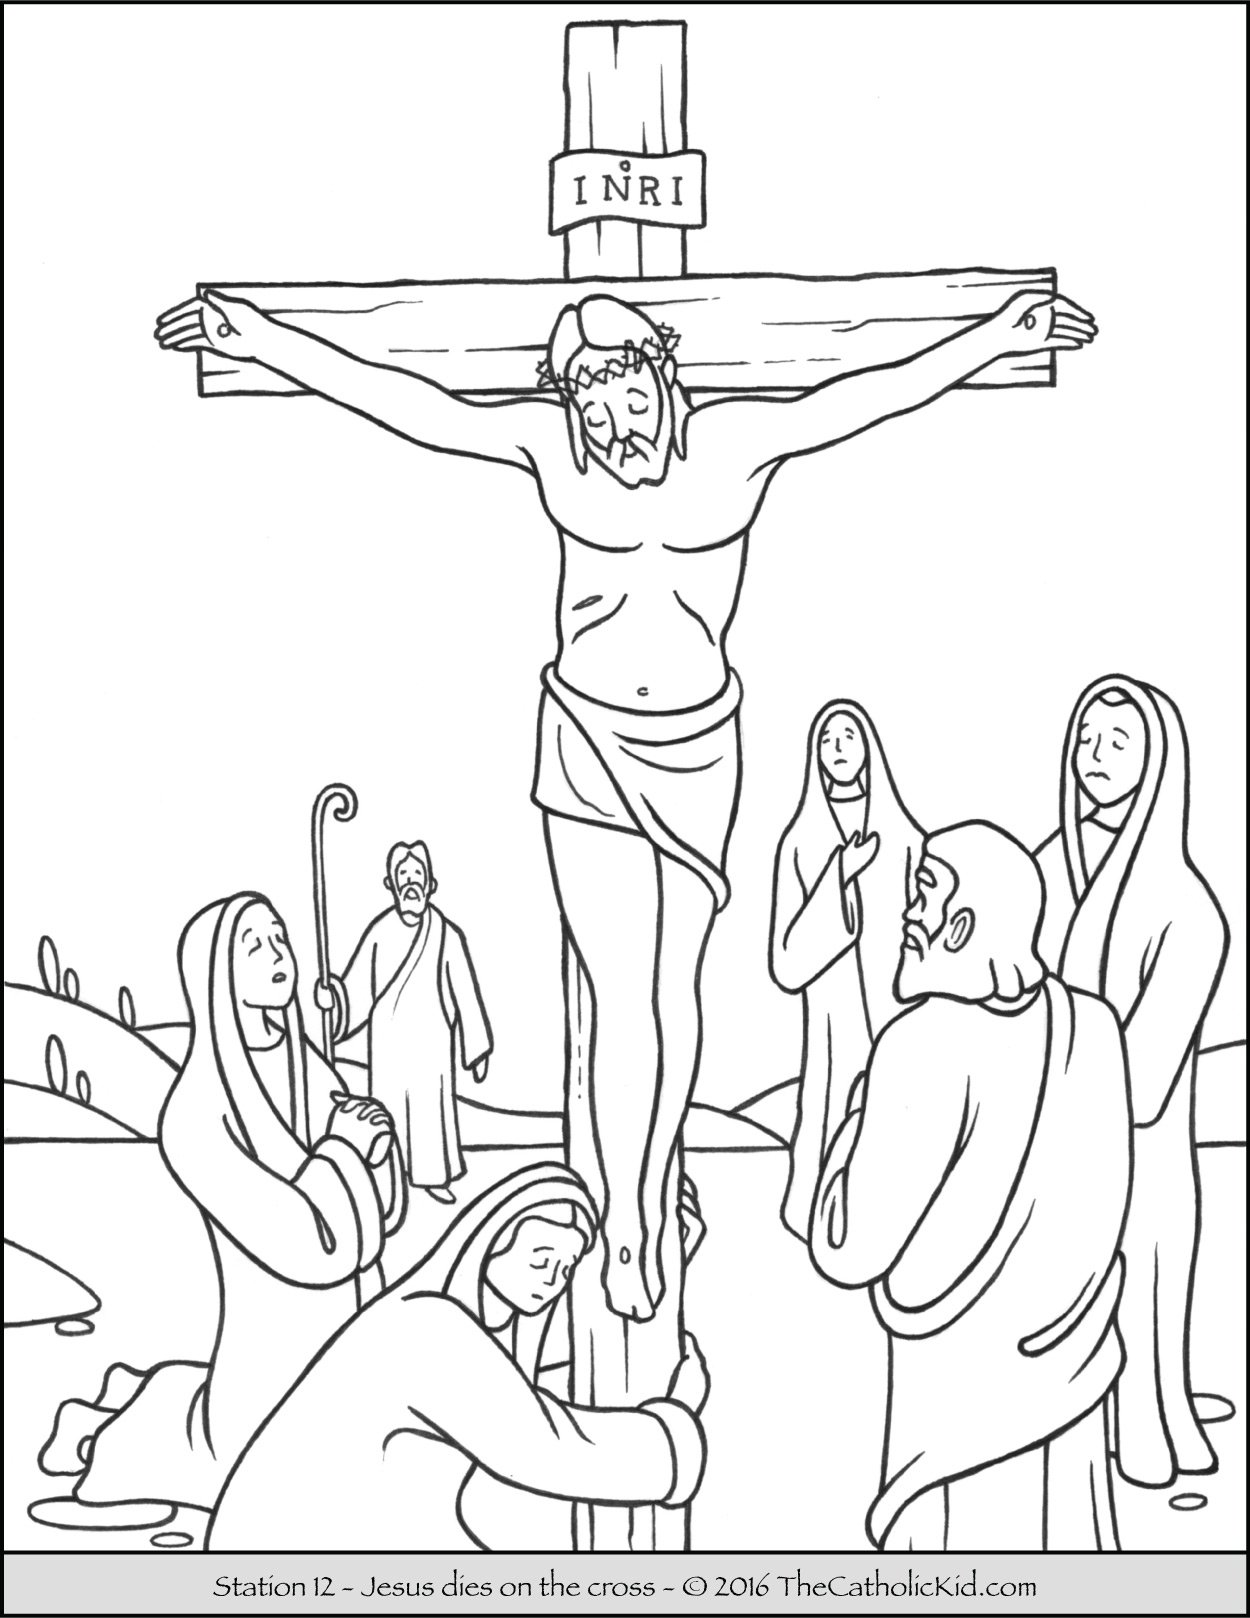 Stations Of The Cross Coloring Pages Pleasing Stations Of The Cross Coloring Pages  The Catholic Kid Decorating Design